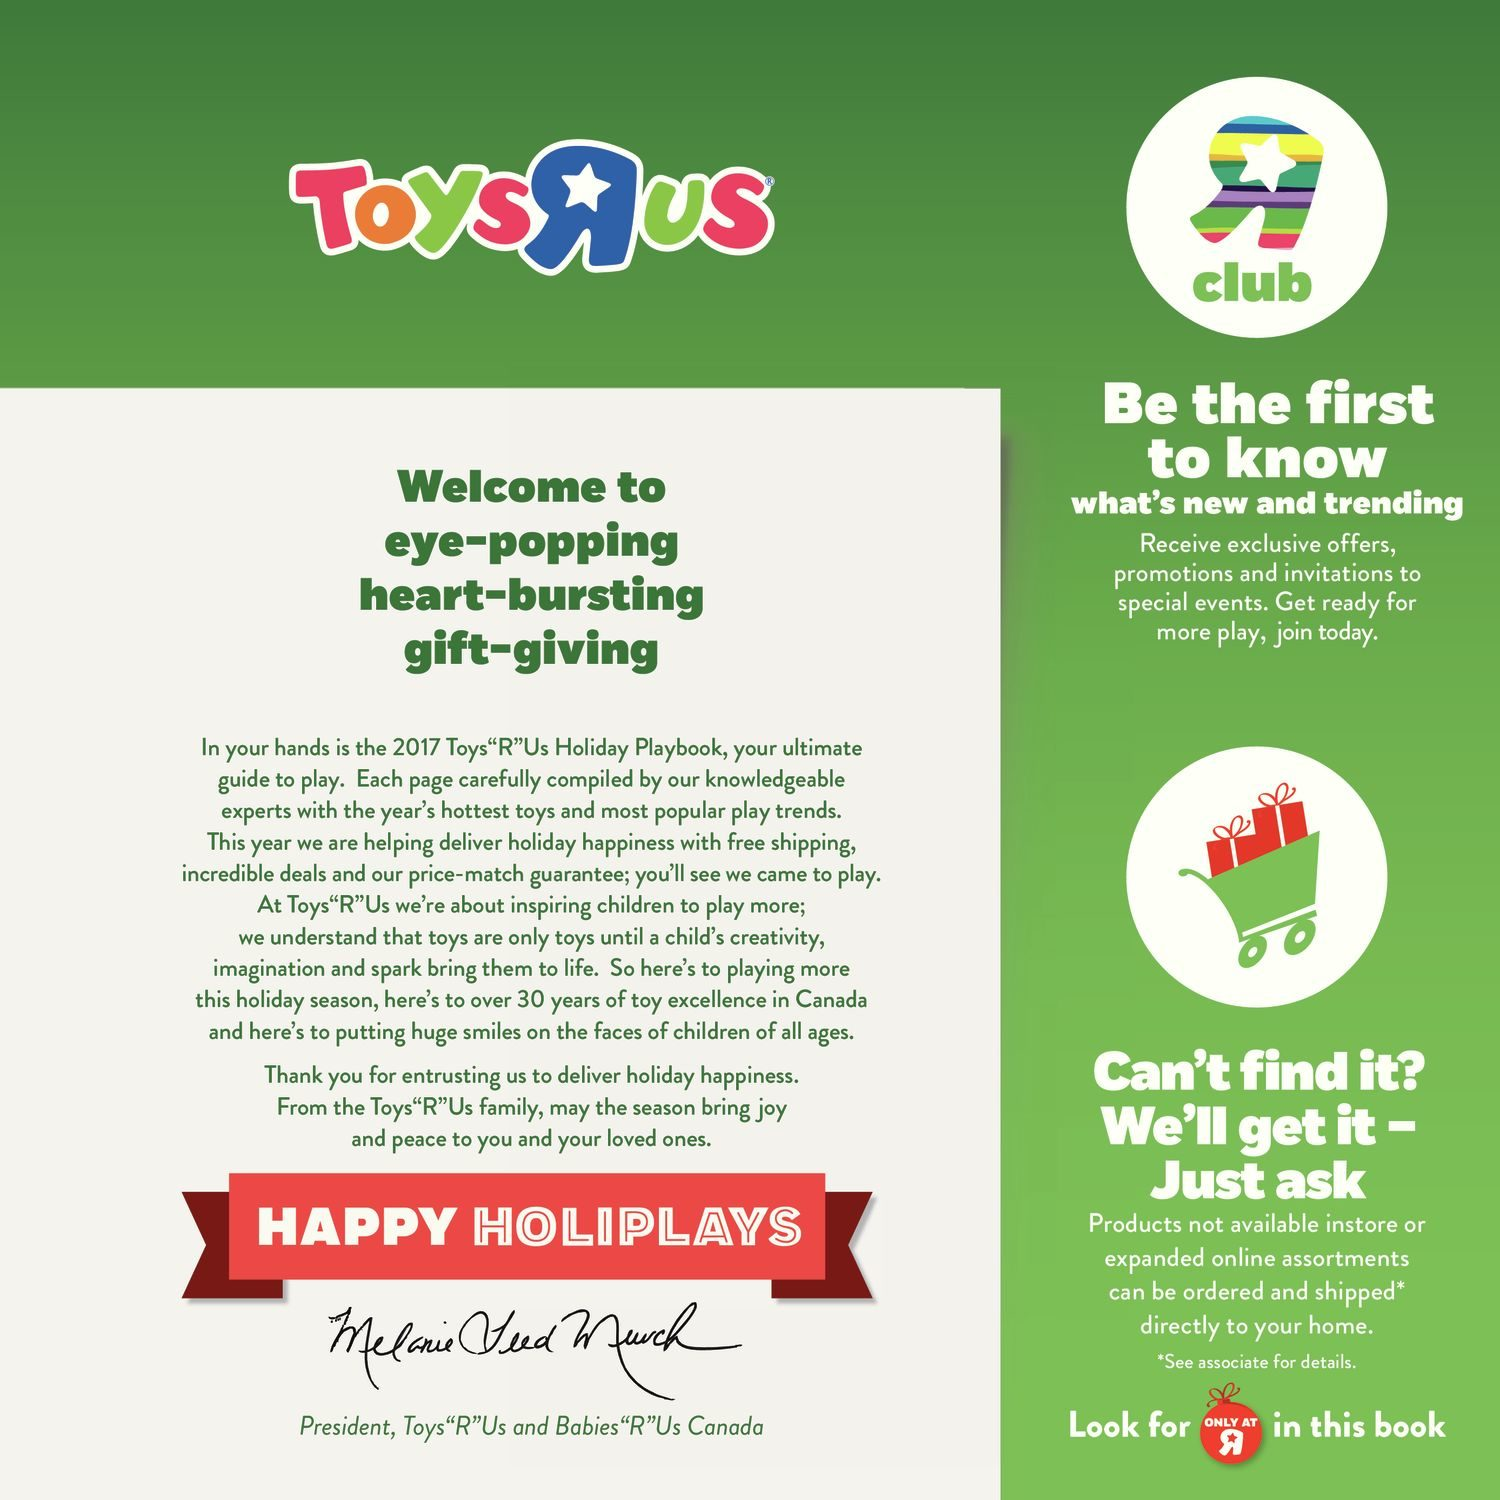 Toys R Us Weekly Flyer 2017 Playbook Nov 3 – 16 RedFlagDeals